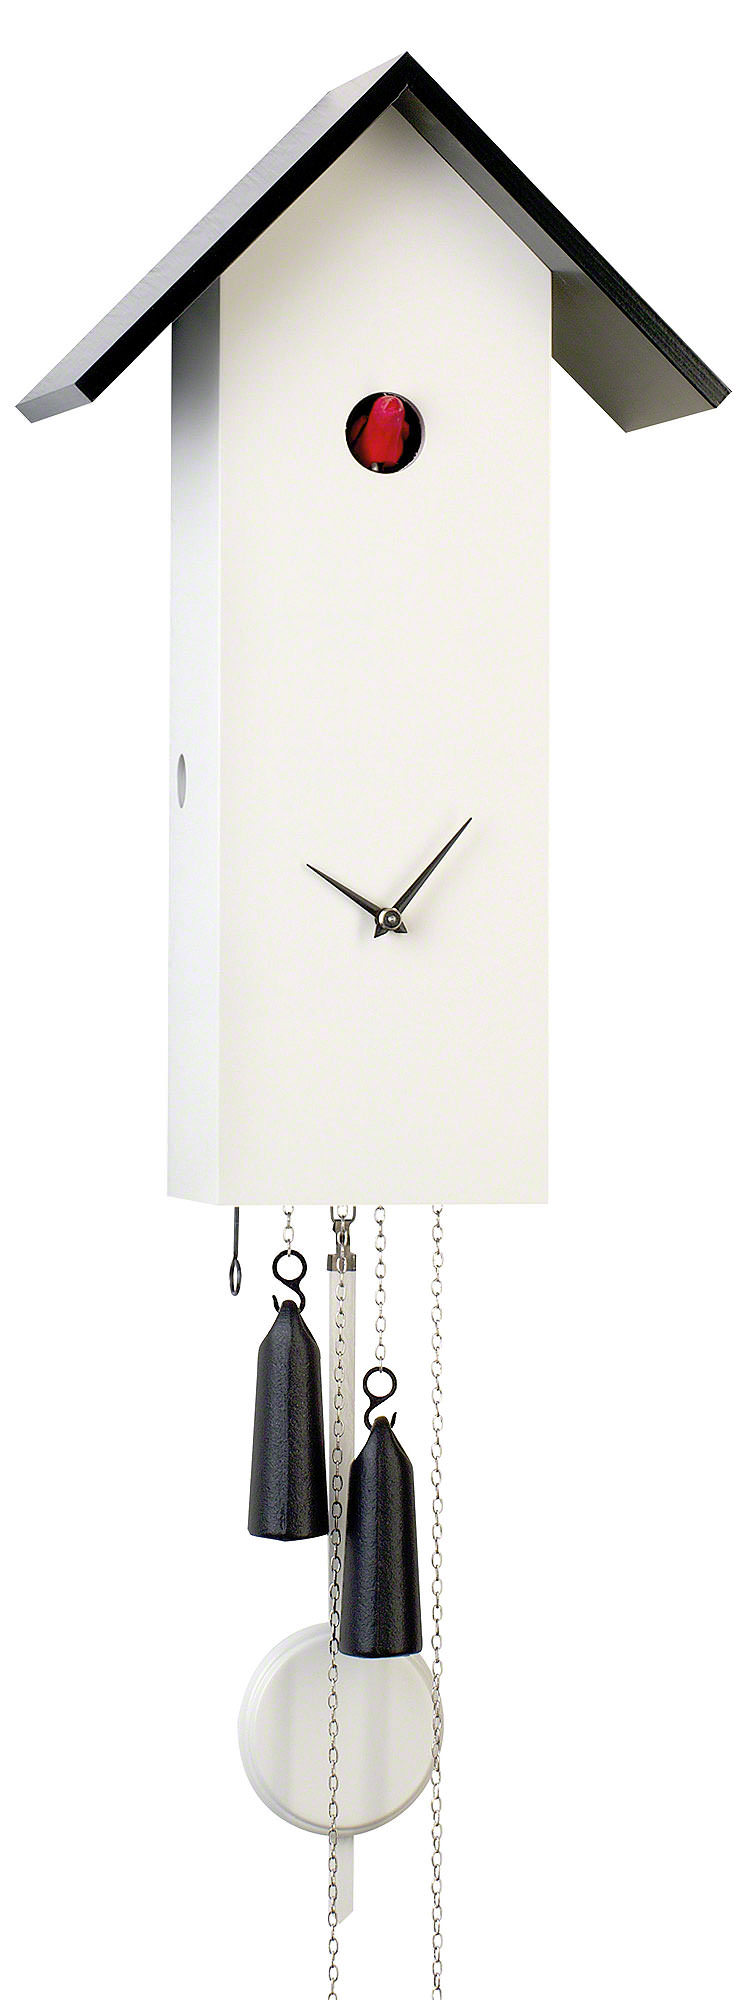 Cuckoo Clock 8-day-movement Modern-Art-Style 41cm by